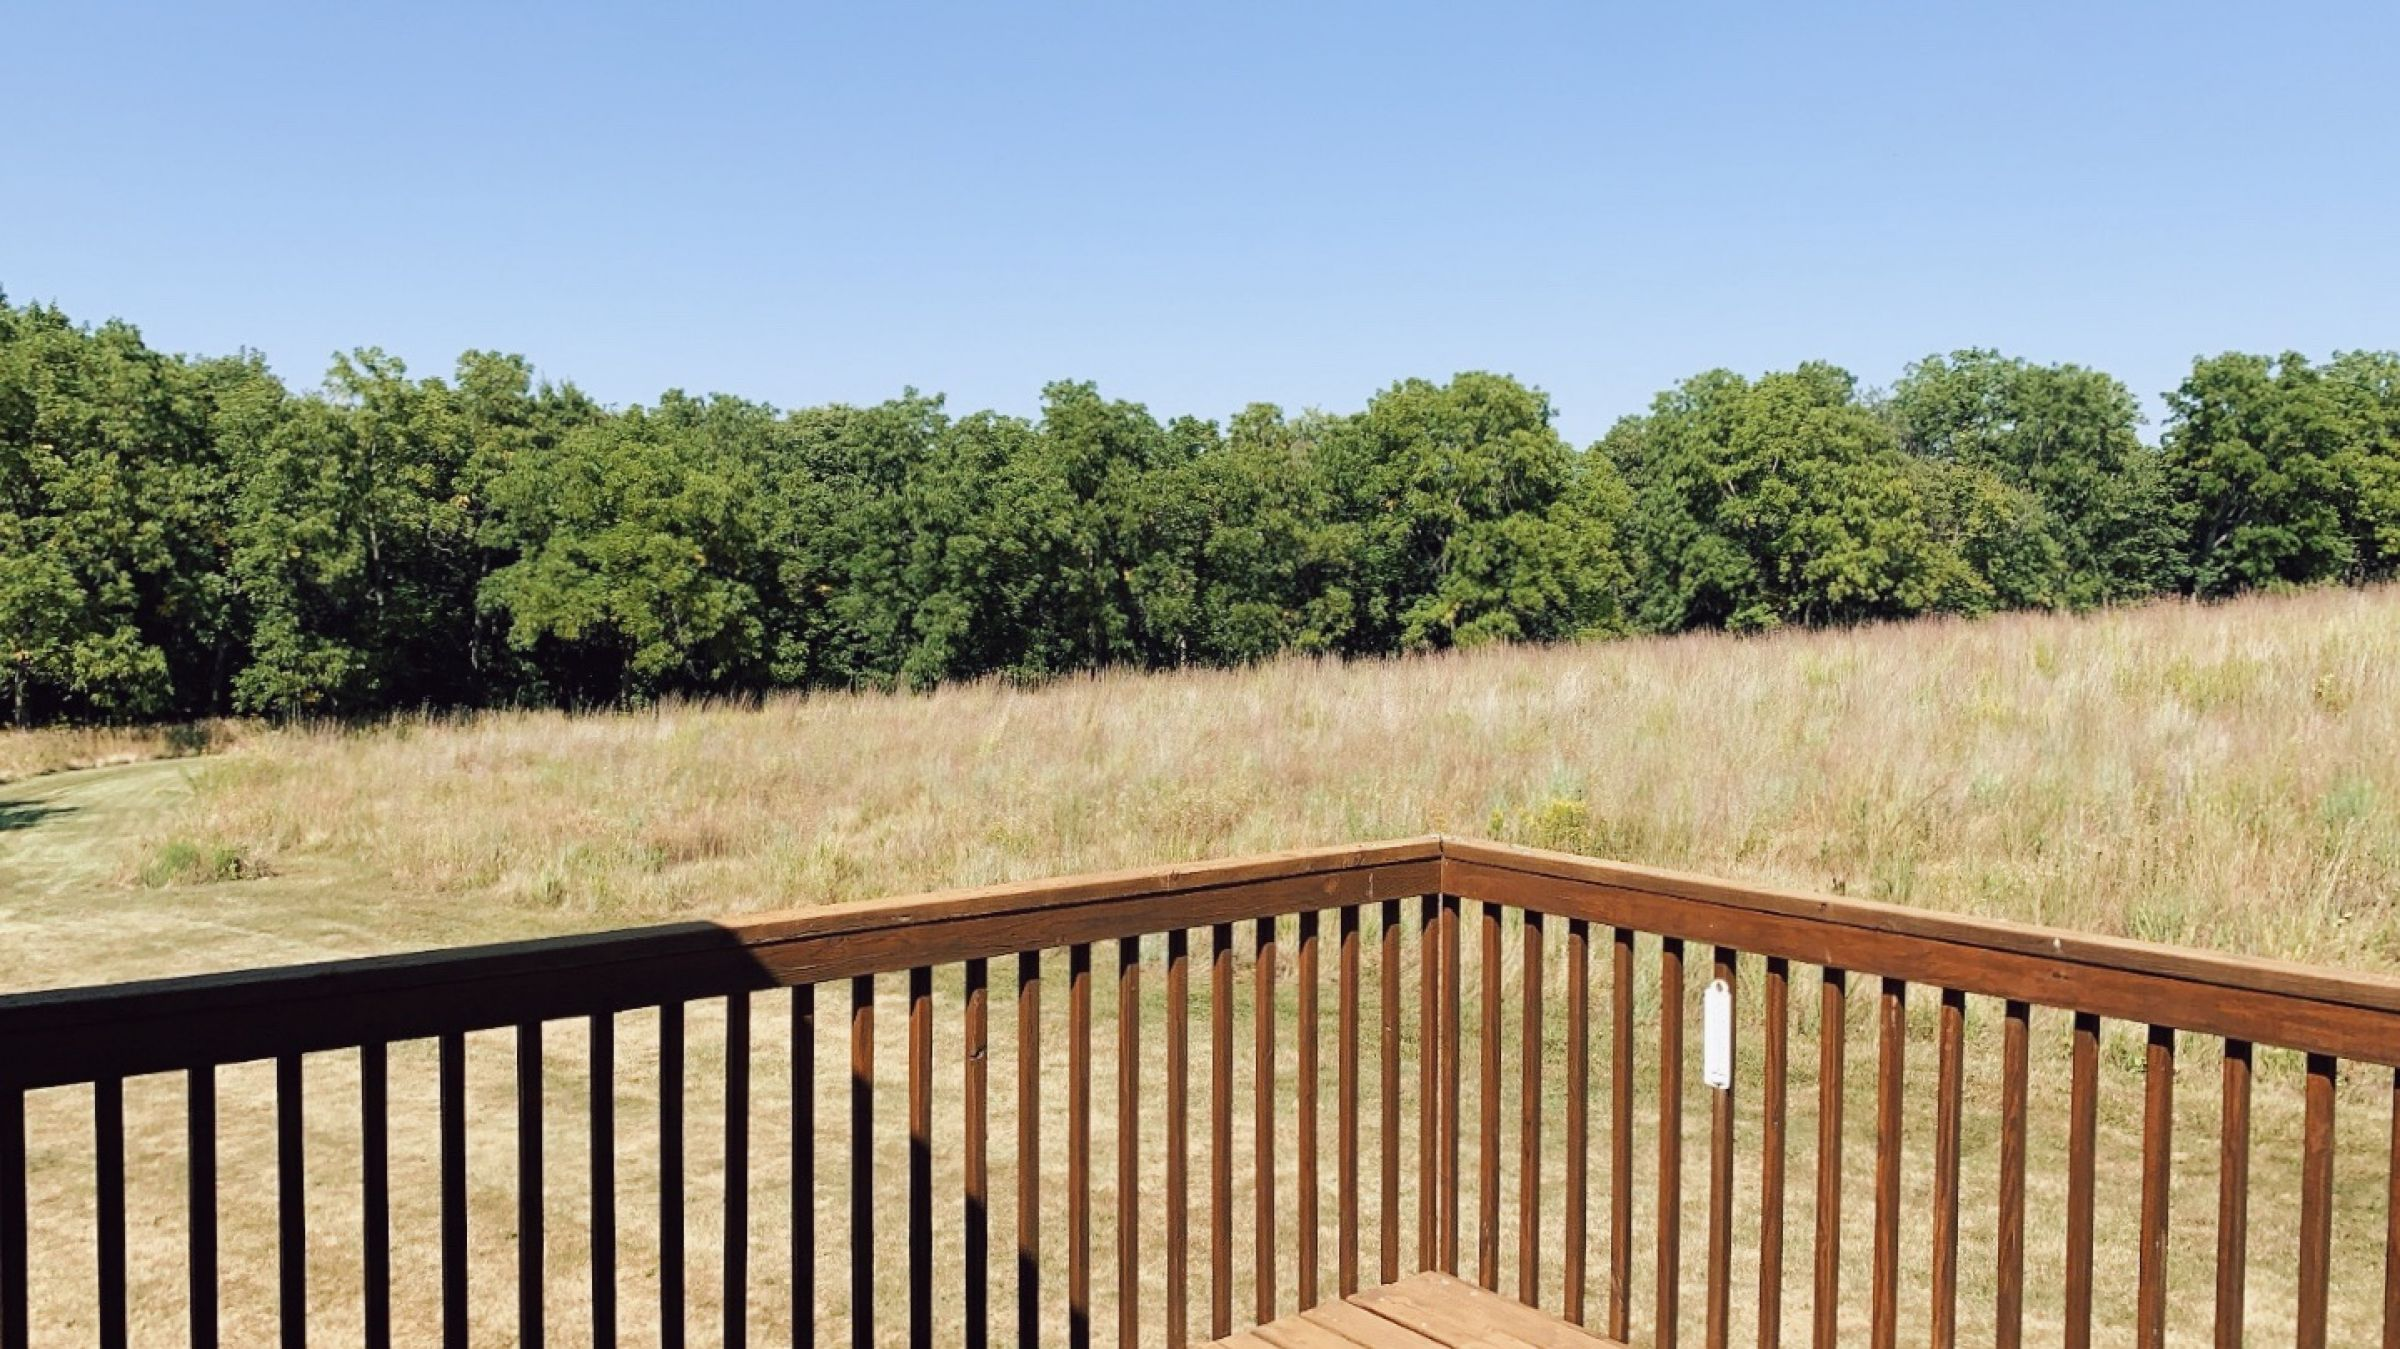 residential-madison-county-iowa-5-acres-listing-number-15408-1-2021-03-11-160751.jpg